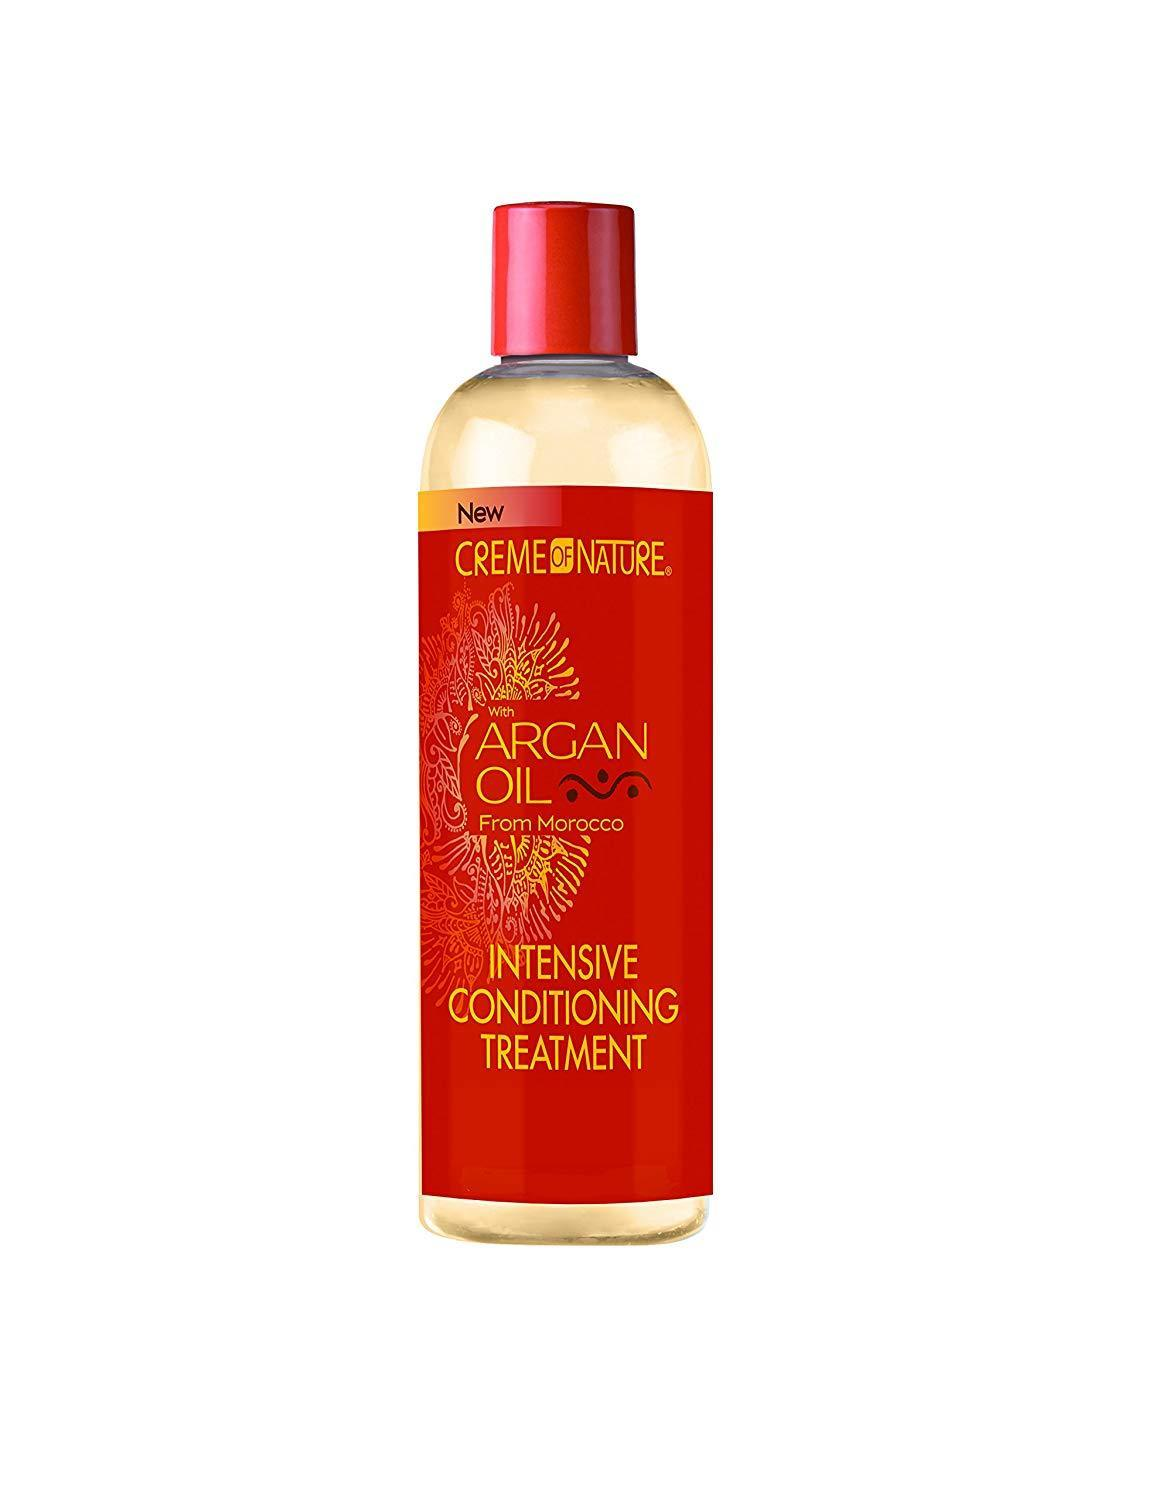 Creme_of_Nature_Argan_Oil_Intensive_Conditioning_Treatment_12oz